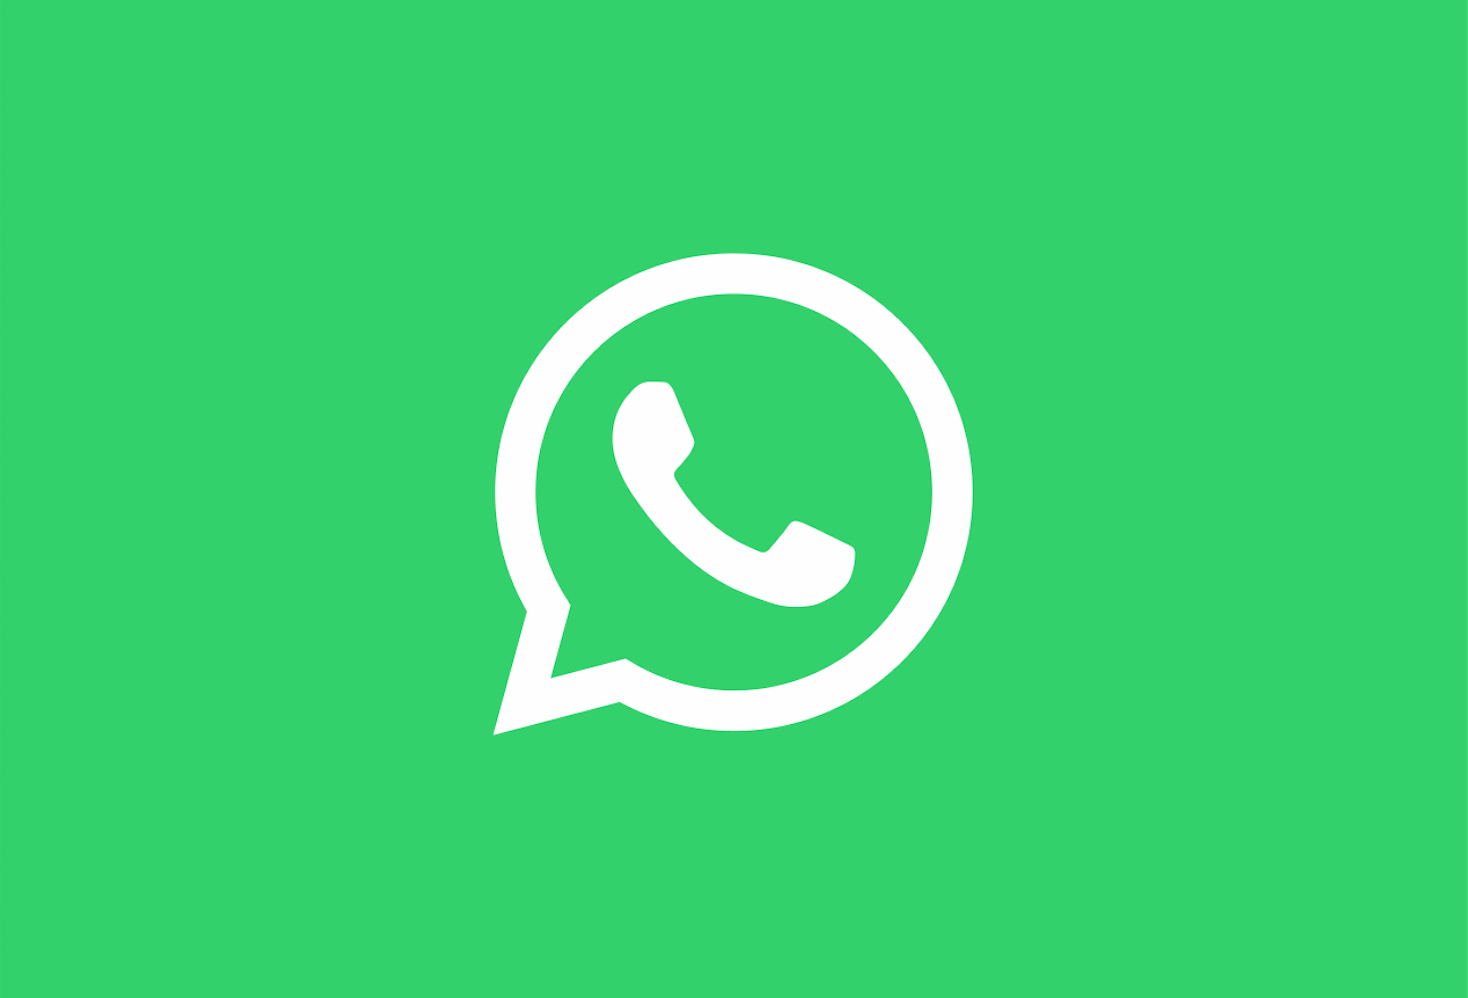 Developers Can Now Verify Users Via WhatsApp